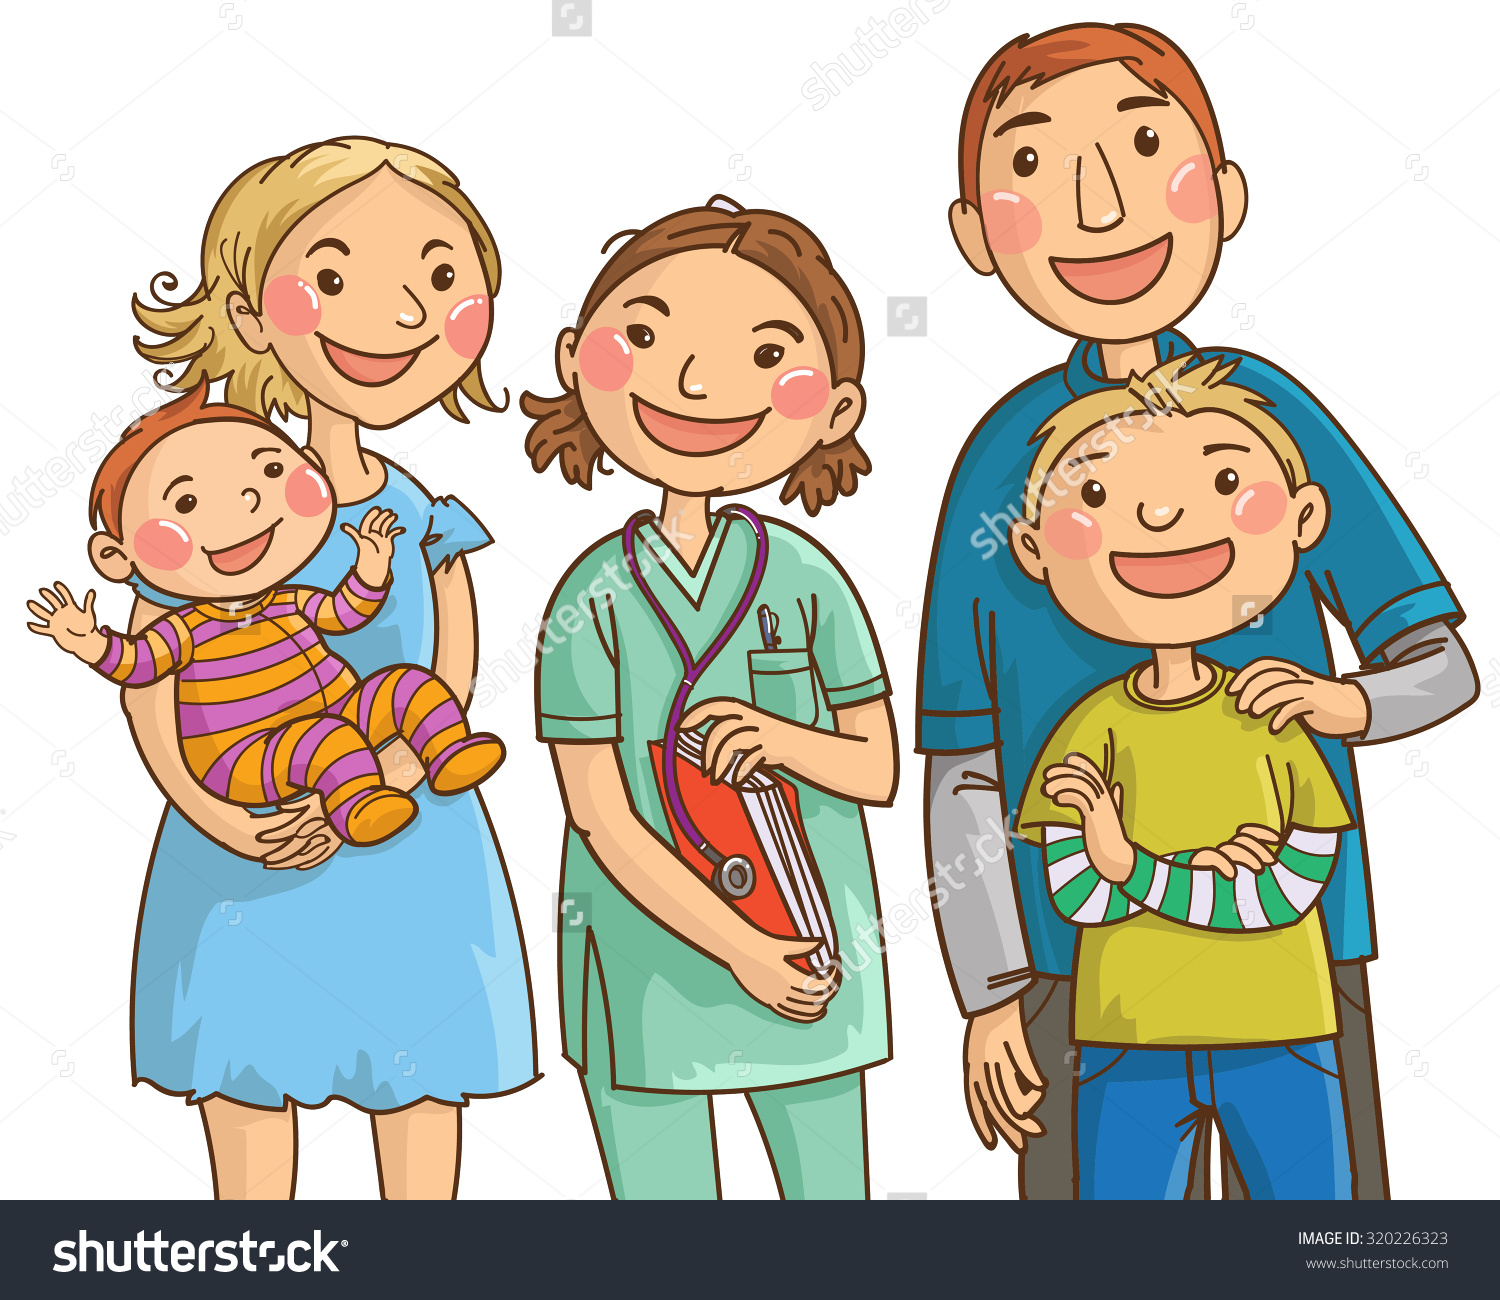 Family doctor clipart.